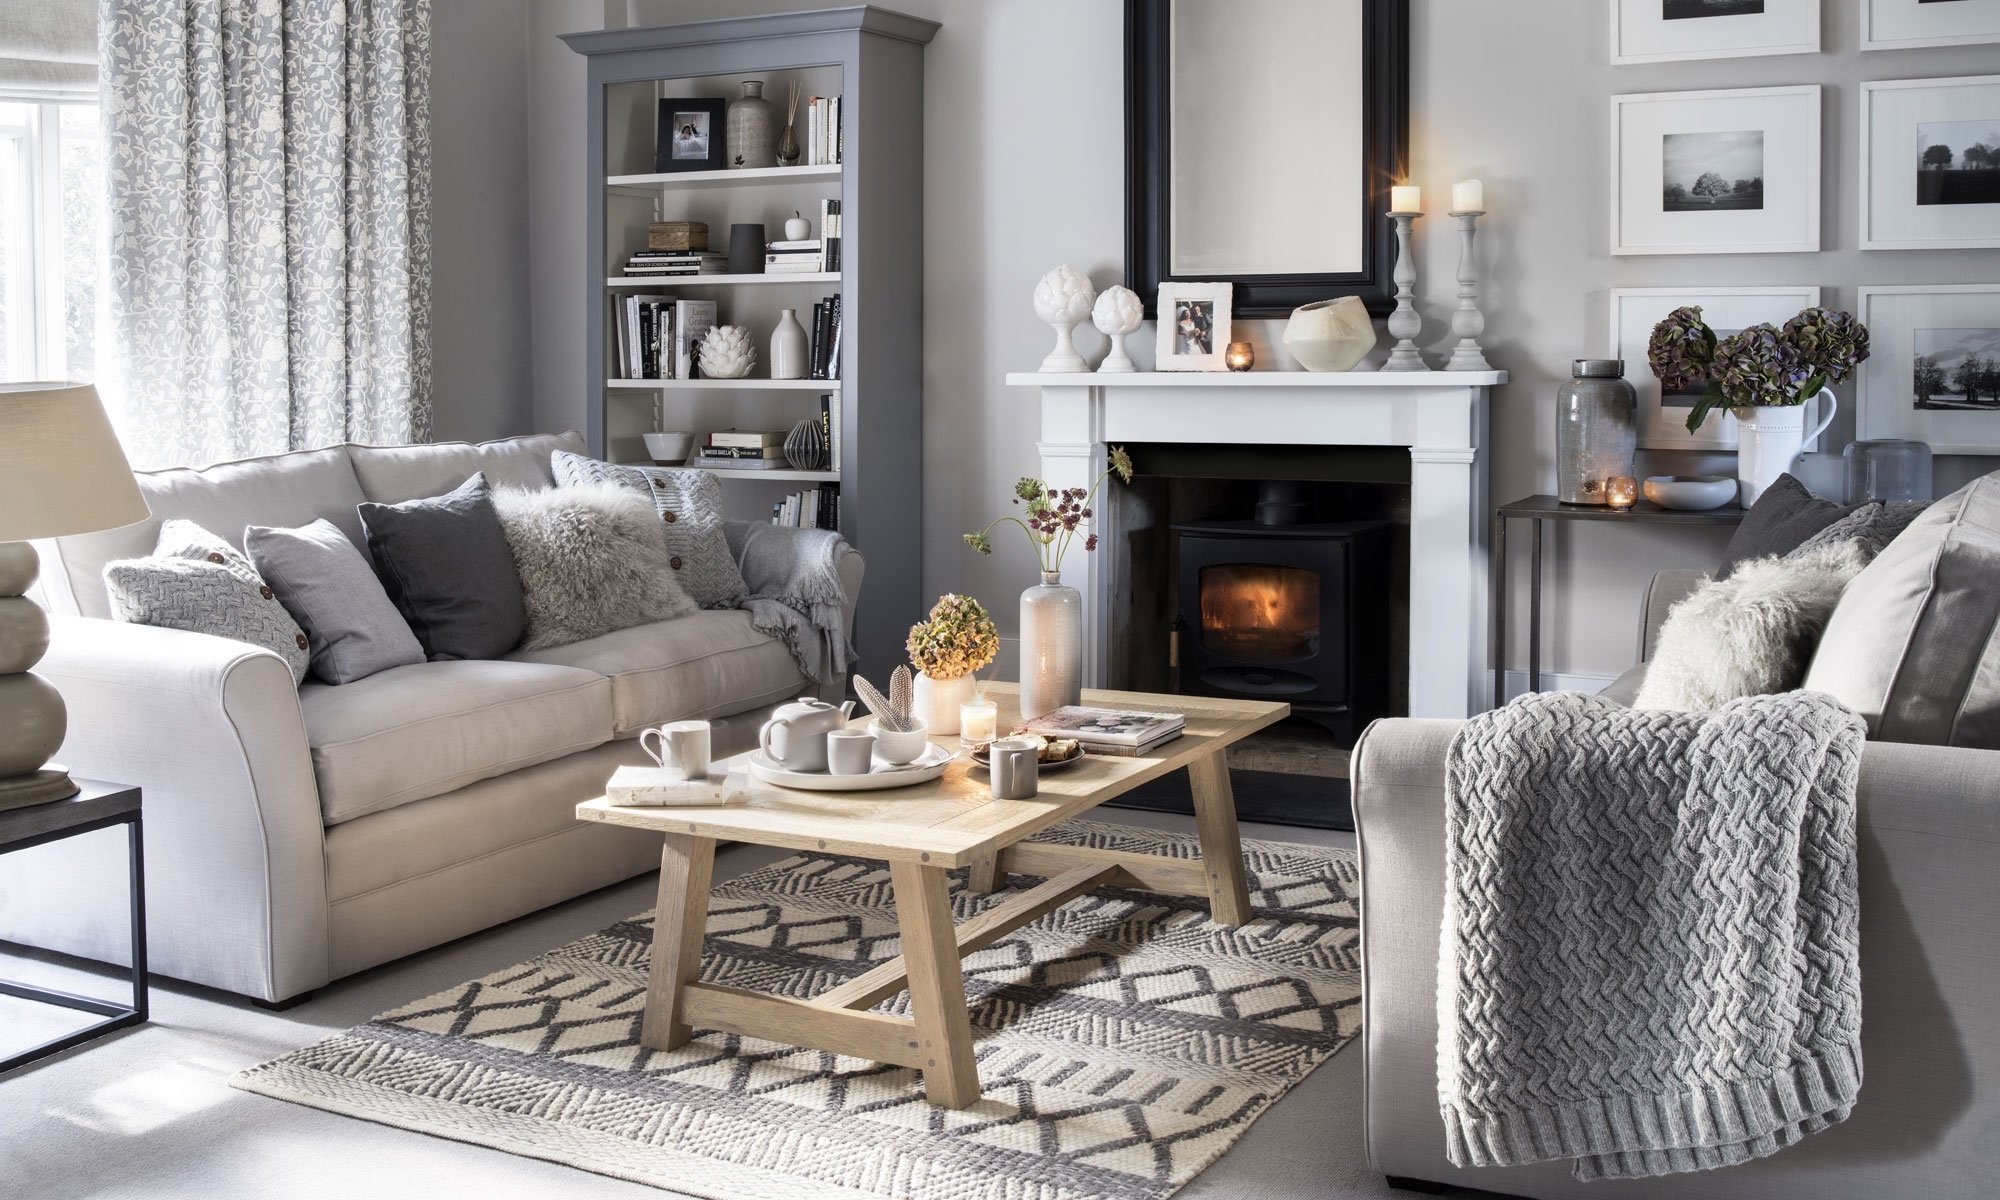 10 Amazing Interior Decorating Ideas For Living Rooms living room ideas designs and inspiration ideal home 9 2021